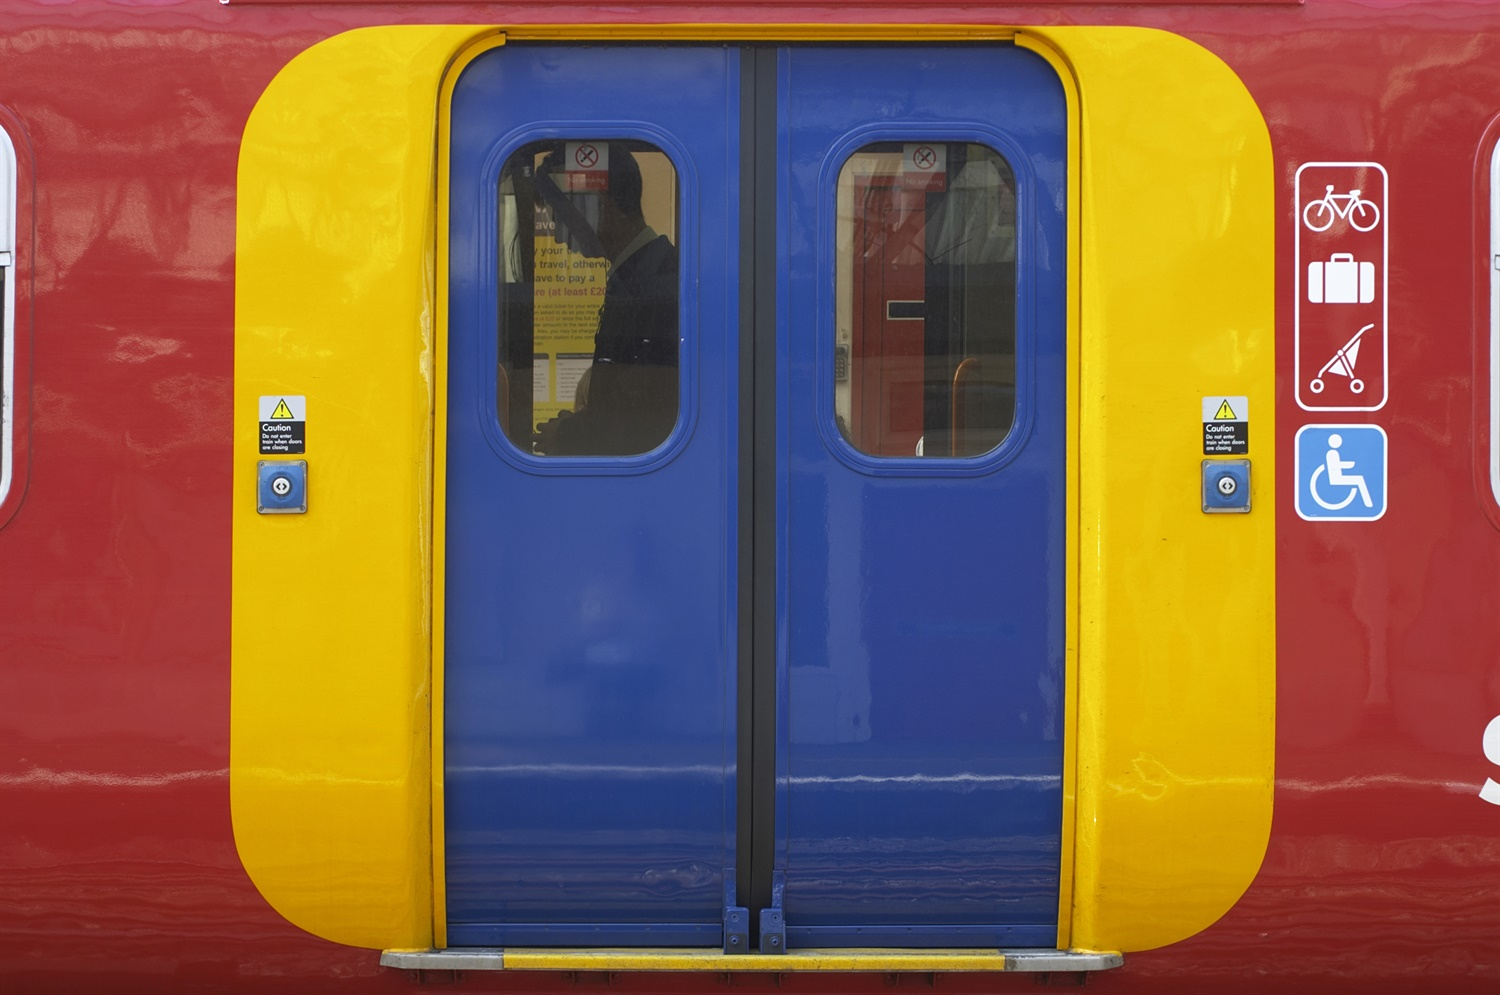 DfT calls for new technology to transform transport accessibility, but union warns against 'faceless' railway